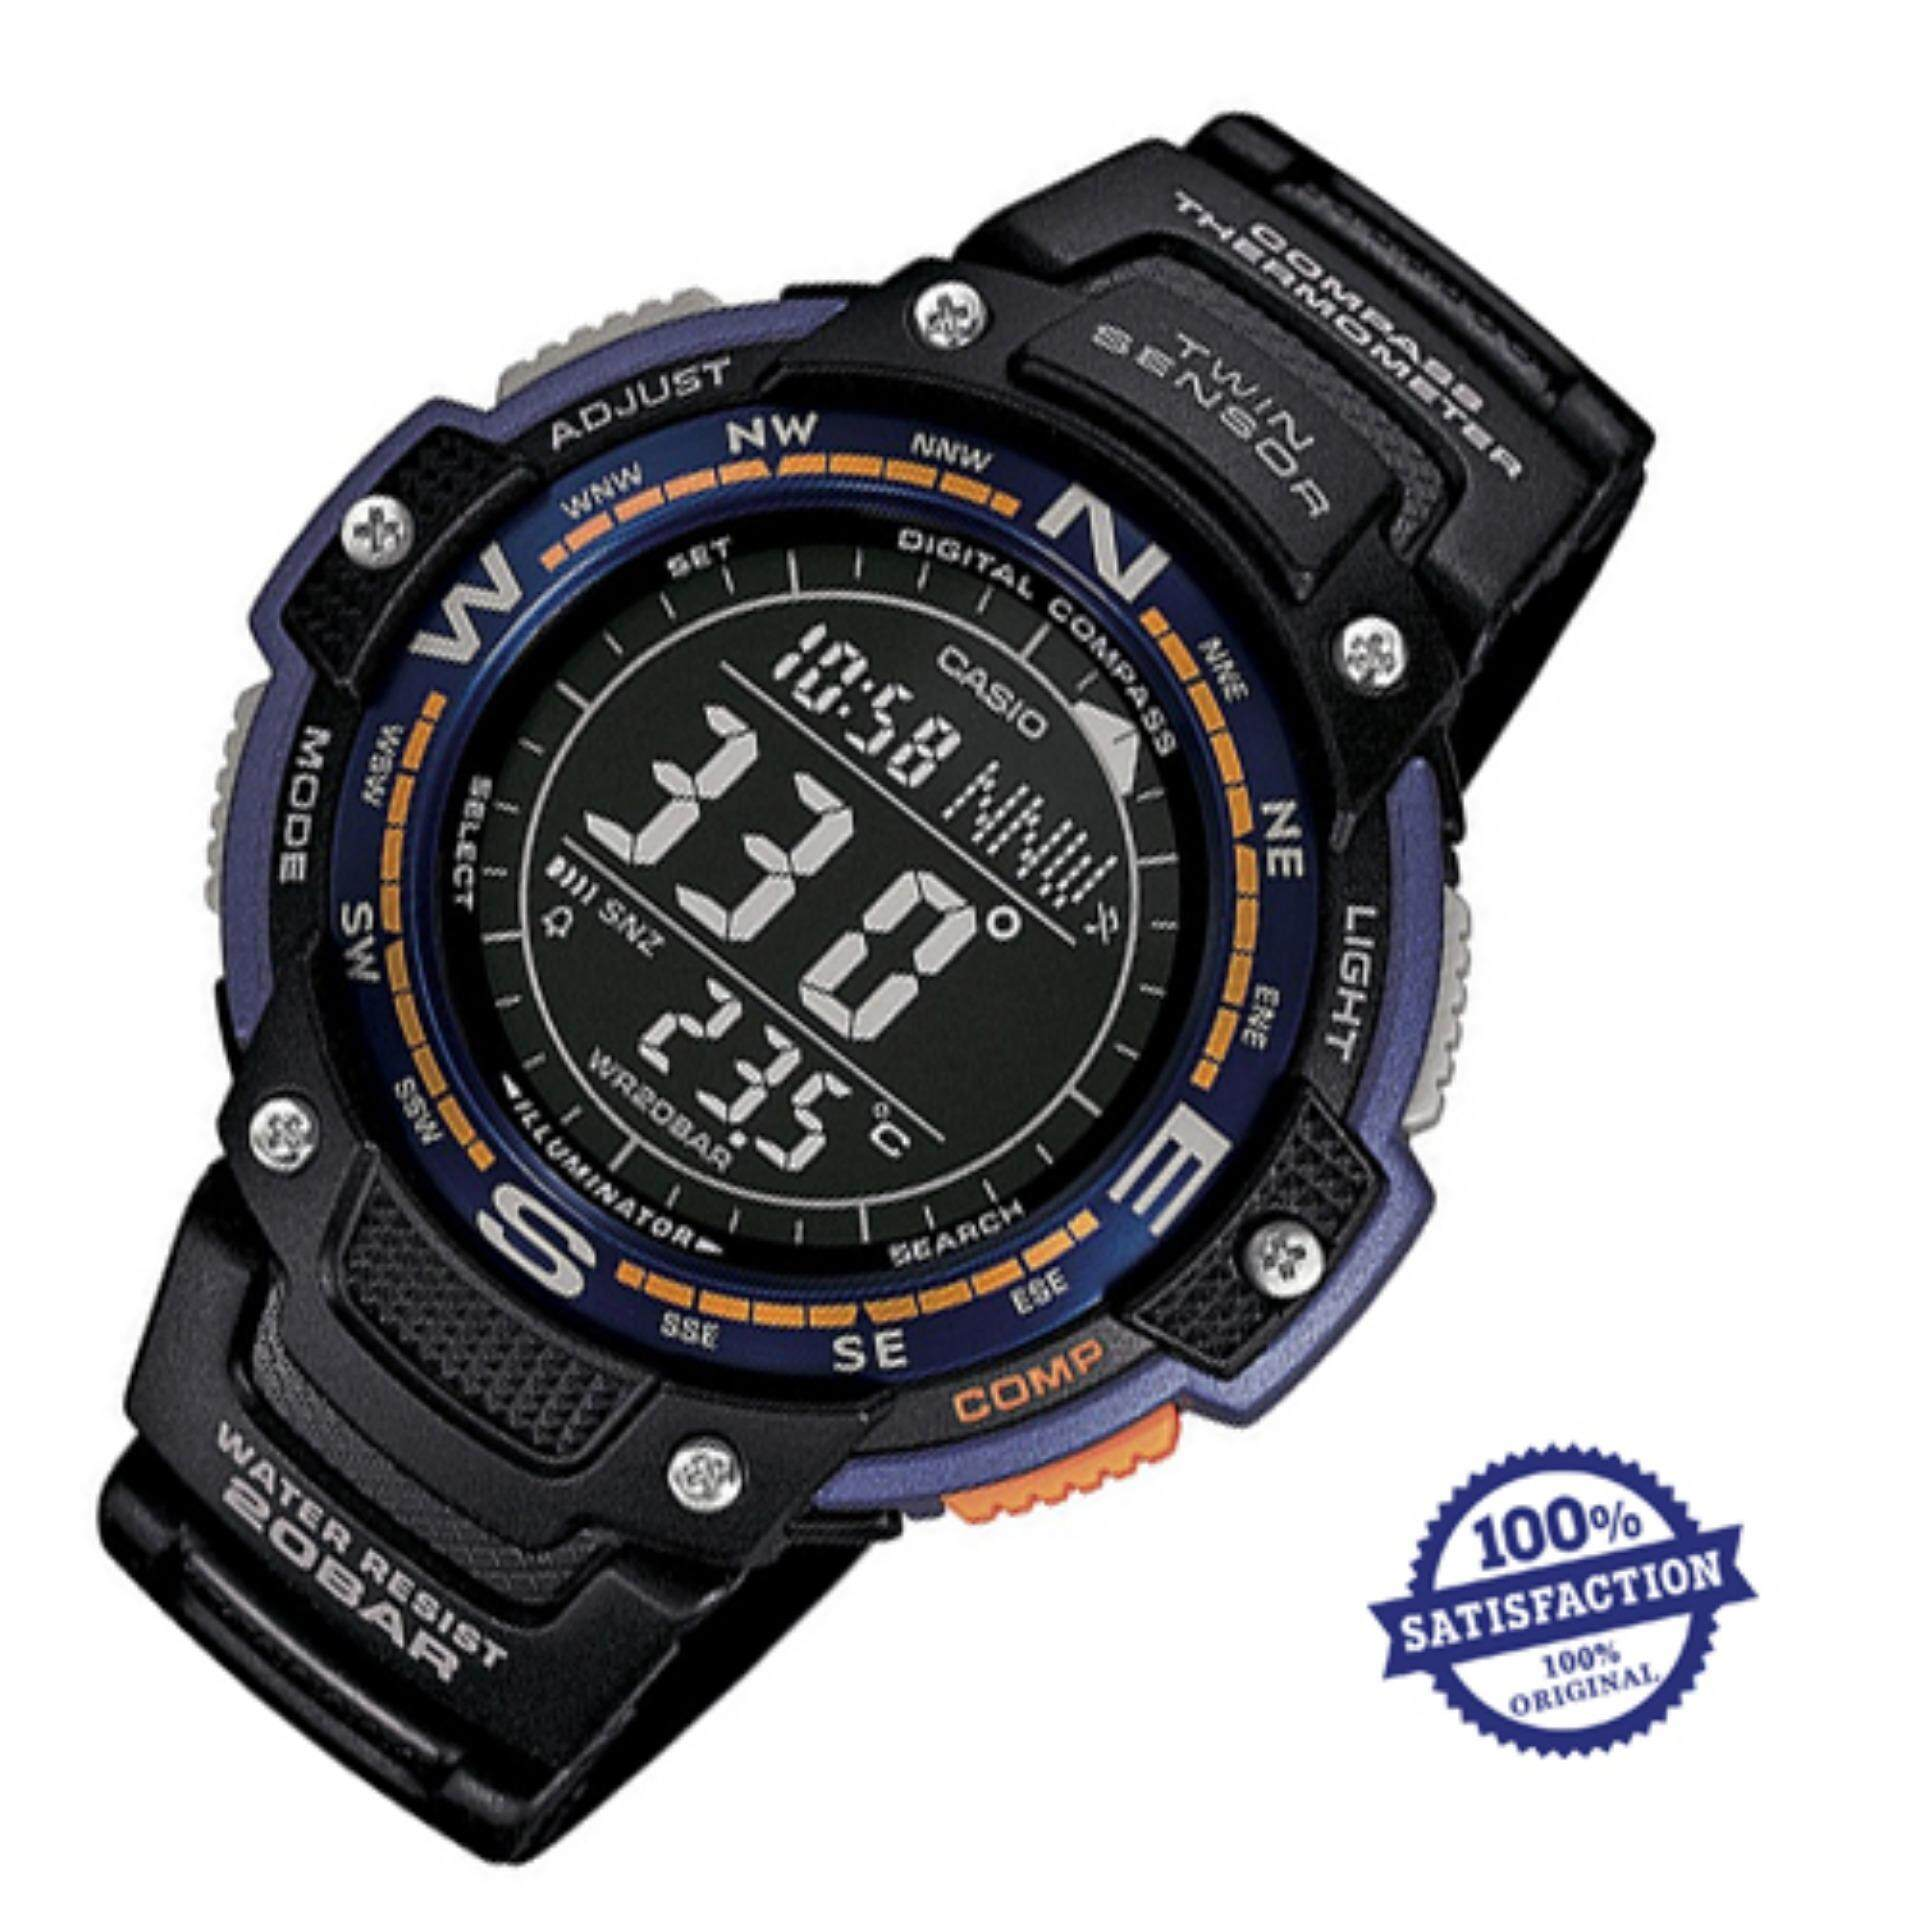 SGW100B 3V Sports Casio USA Source · Casio OutGear SGW 100 2B Twin Sensor Watch Men s Watch